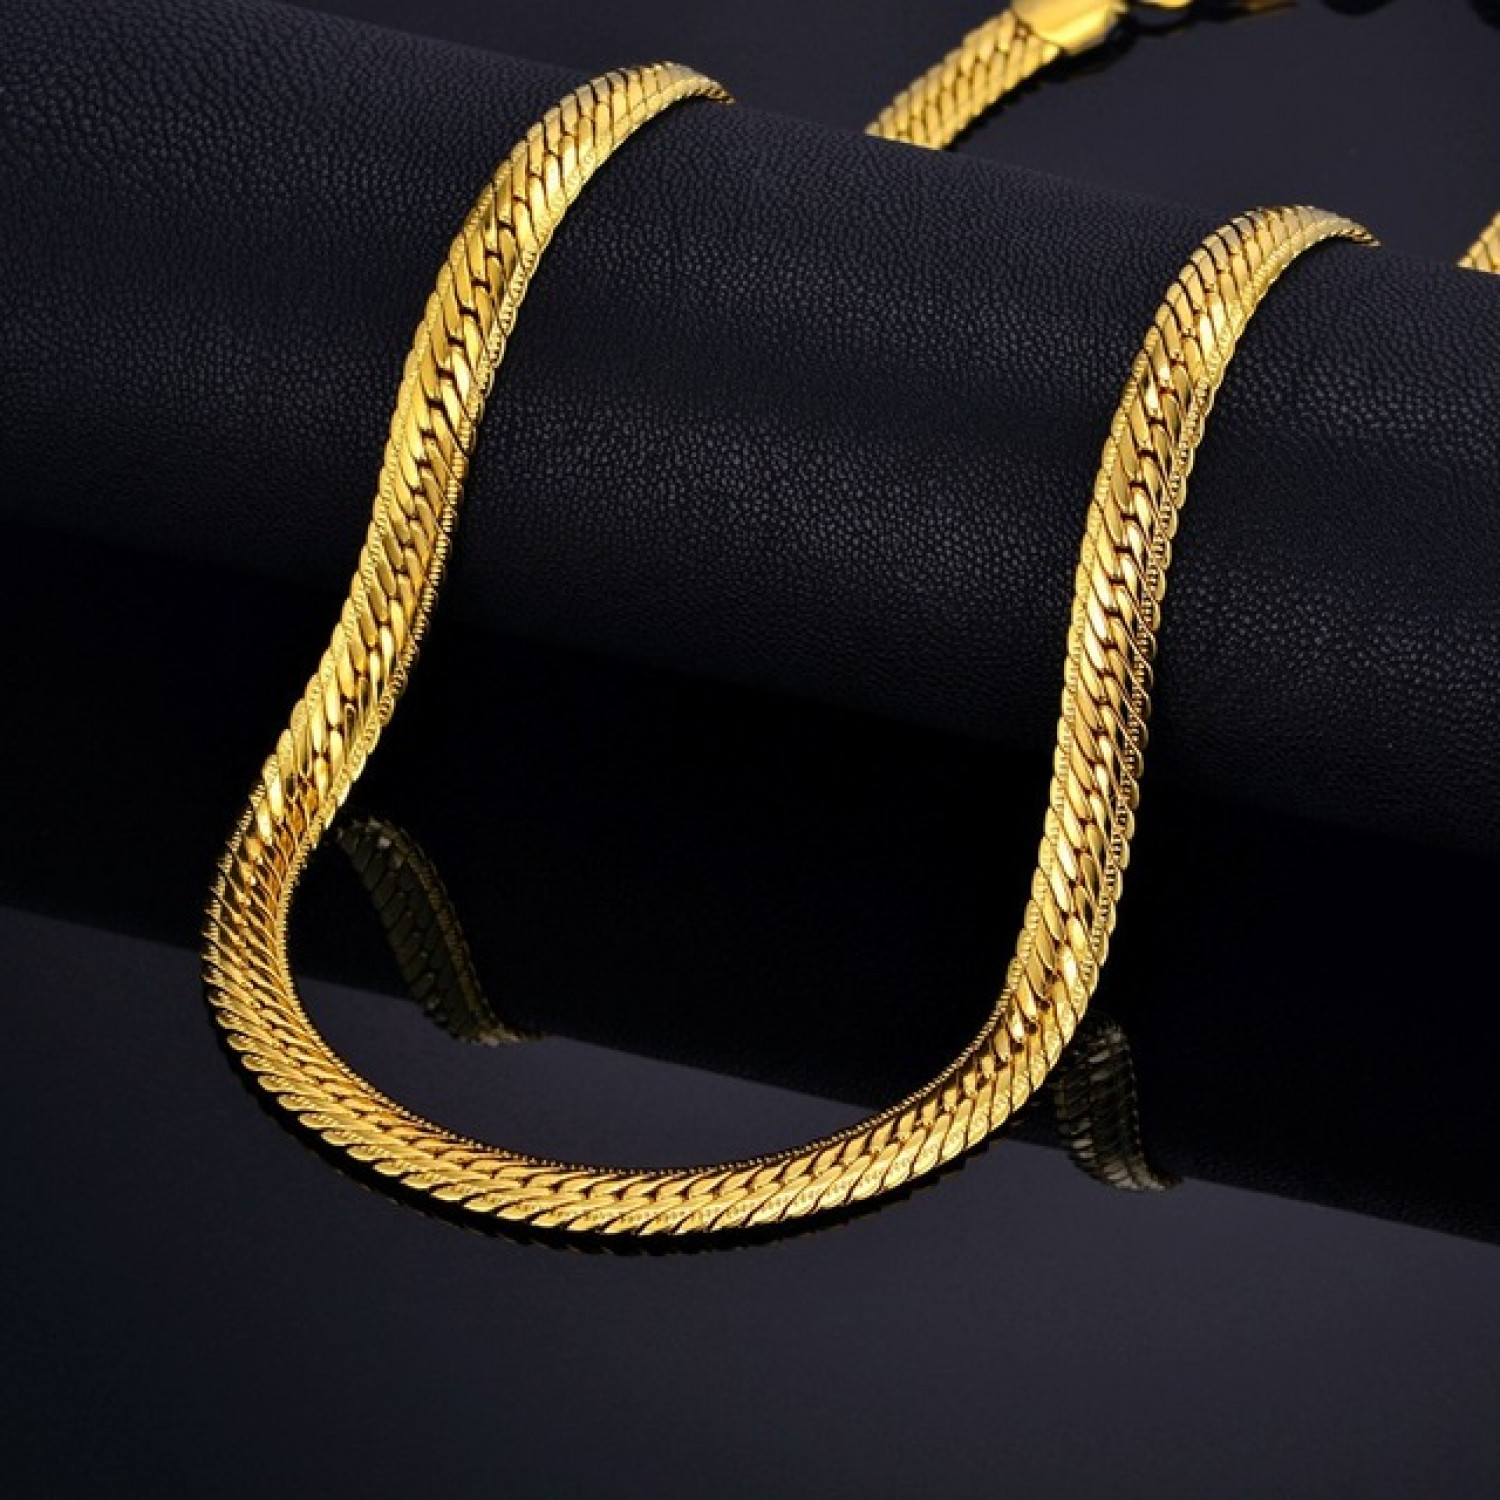 Hip Hop Jewelry | Bling Bling Chains | Iced Out Jewels | Grillz – HipHopBling Infographic